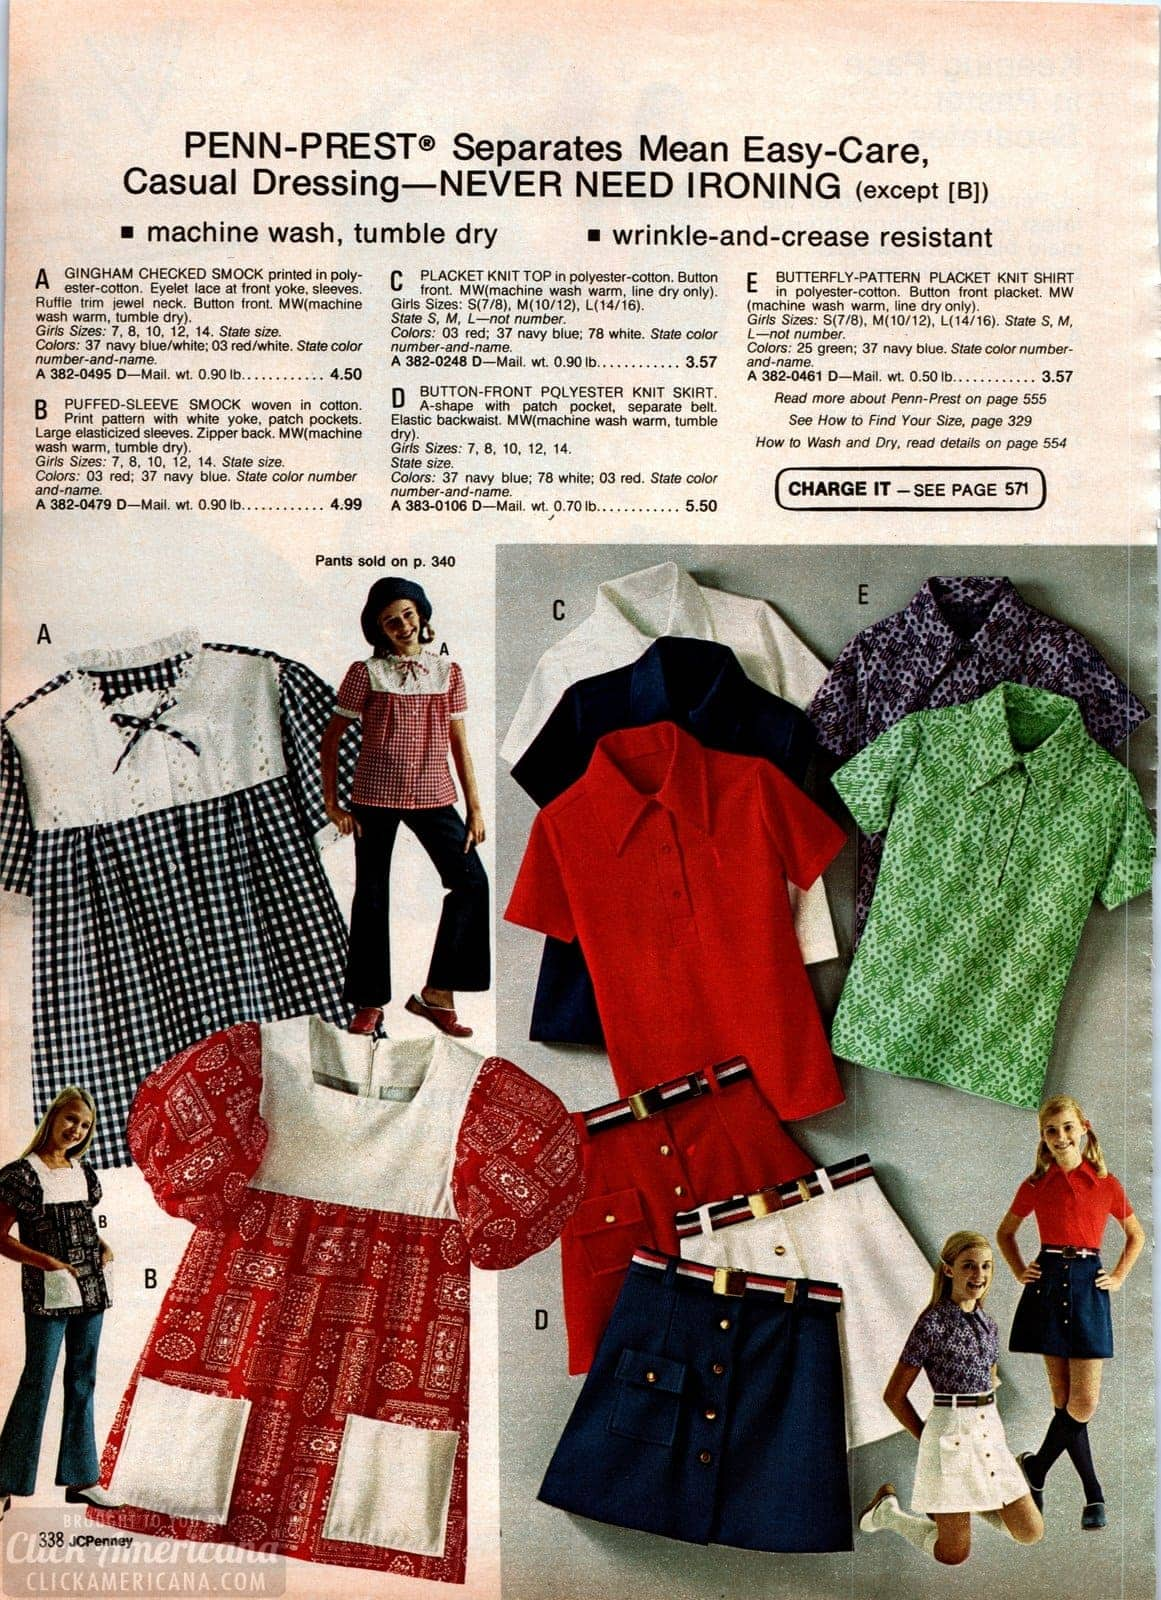 Vintage casual clothes for girls - gingham checks and puffed-sleeve smocks